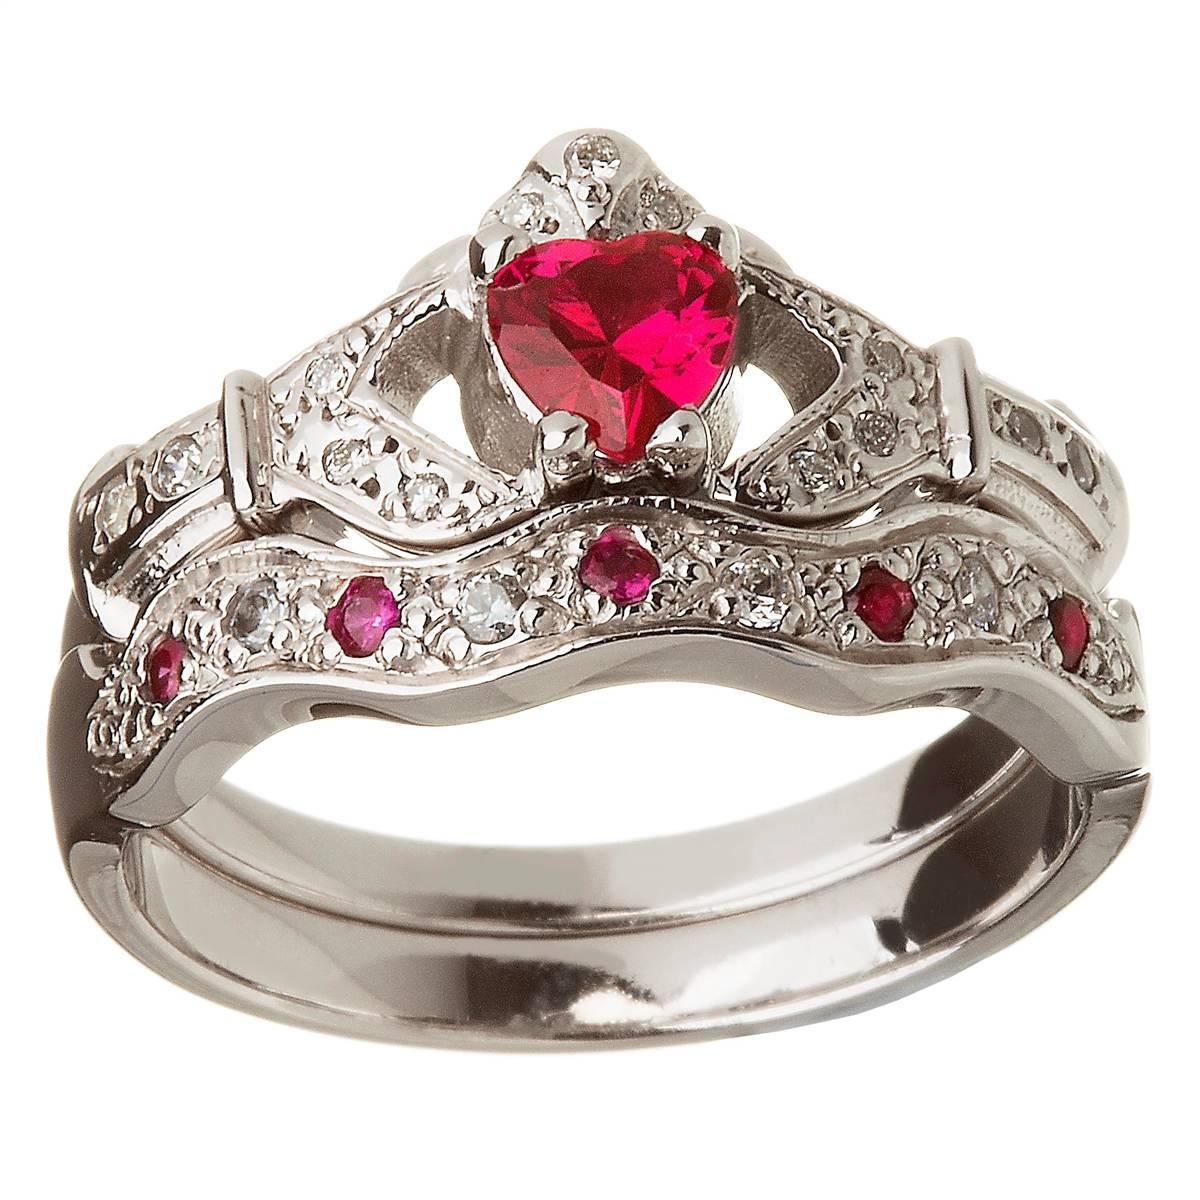 14k White Gold Ruby Set Heart Claddagh Ring & Wedding Ring Set With Diamond Claddagh Engagement & Wedding Ring Sets (View 6 of 15)